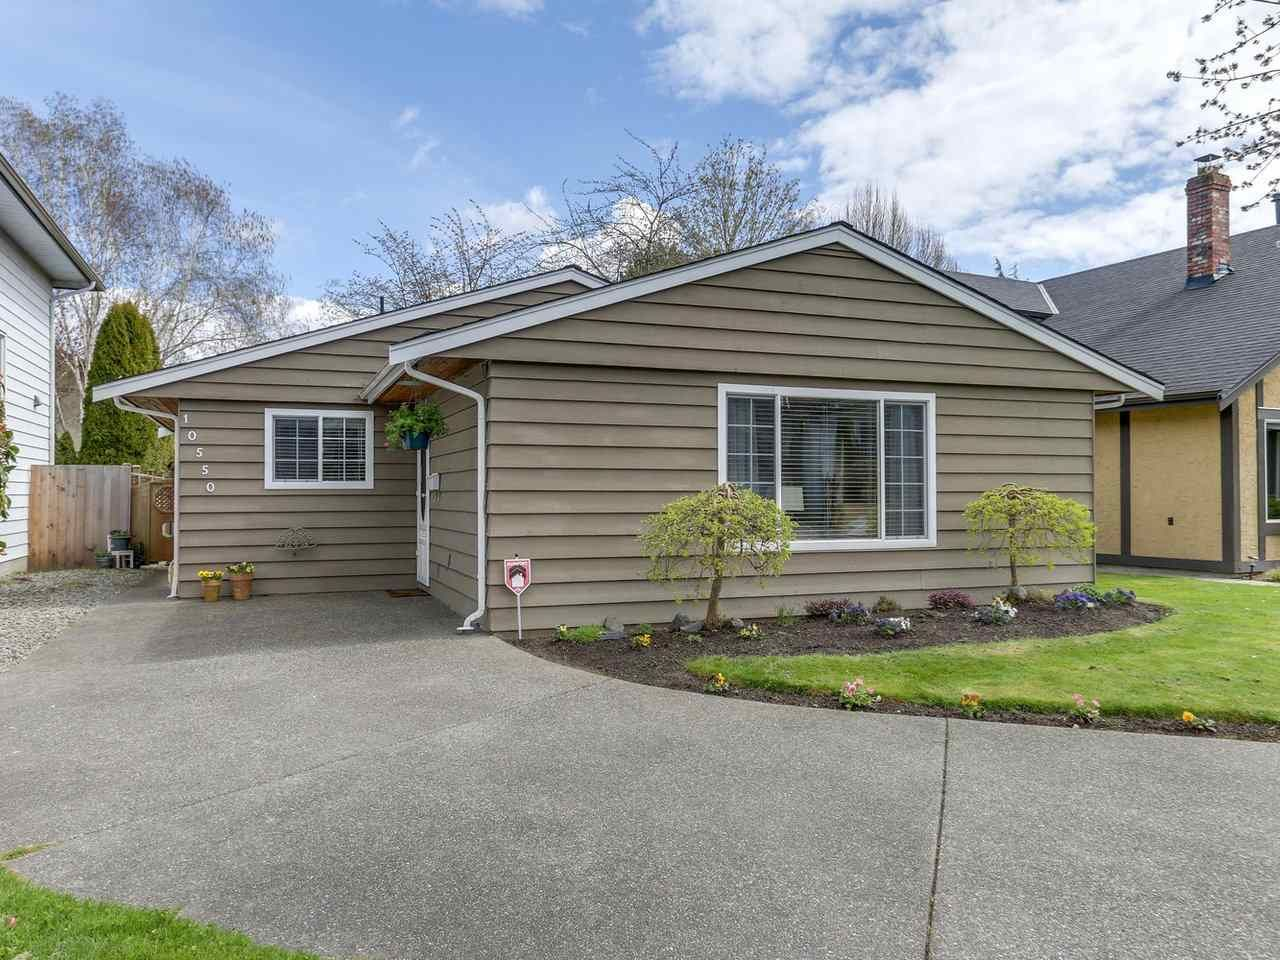 """Main Photo: 10550 HOLLYMOUNT Drive in Richmond: Steveston North House for sale in """"HOLLIES"""" : MLS®# R2366603"""